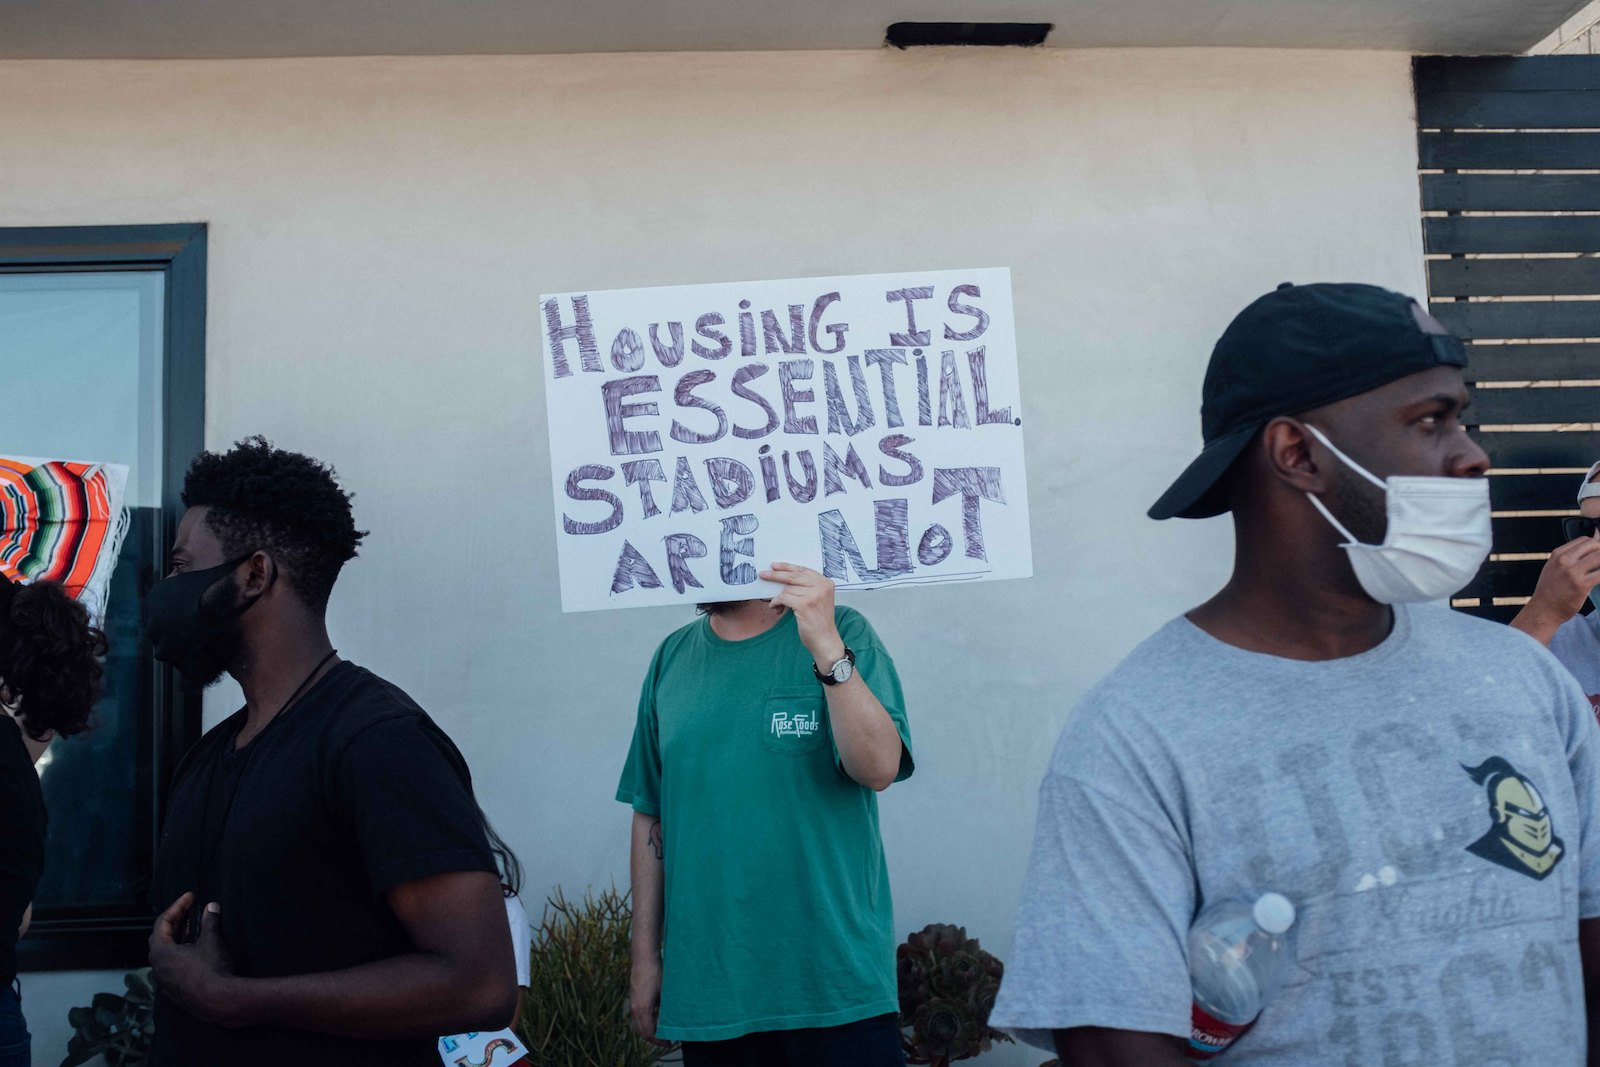 a person in a green t-shirt holds a sign that says housing is essntial stadiums are not